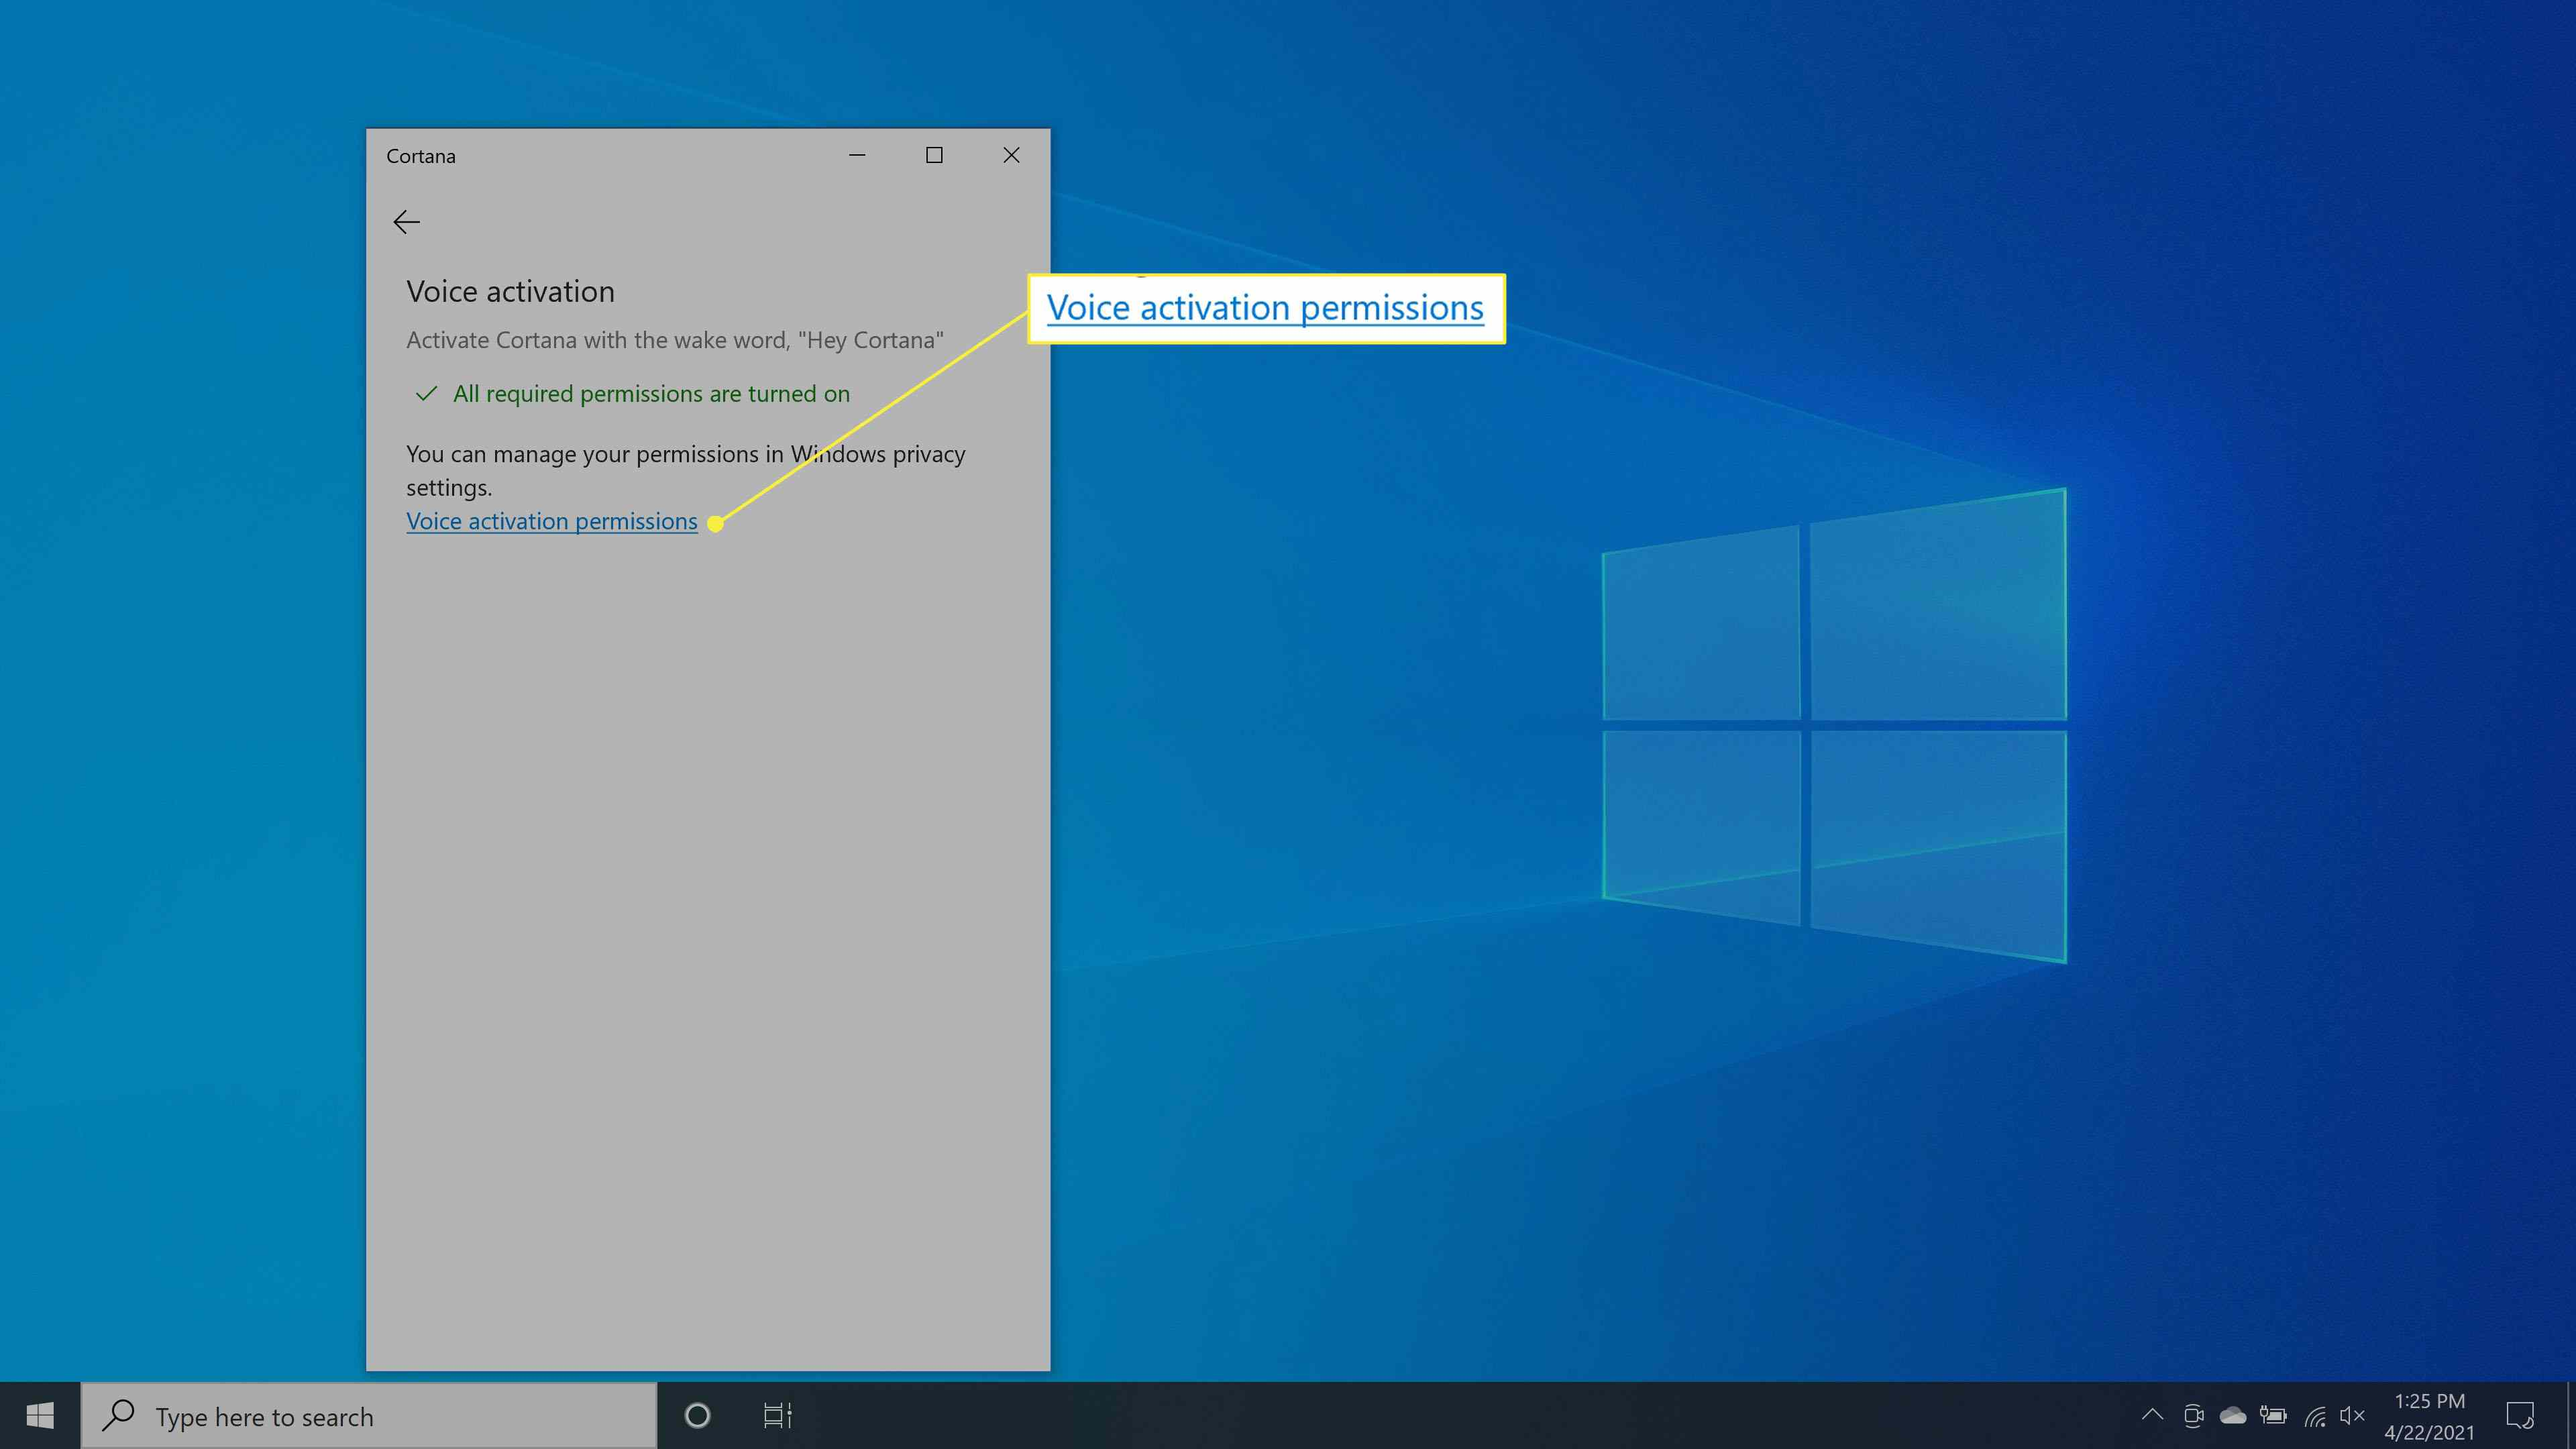 Selecting Voice activation permissions in Cortana.